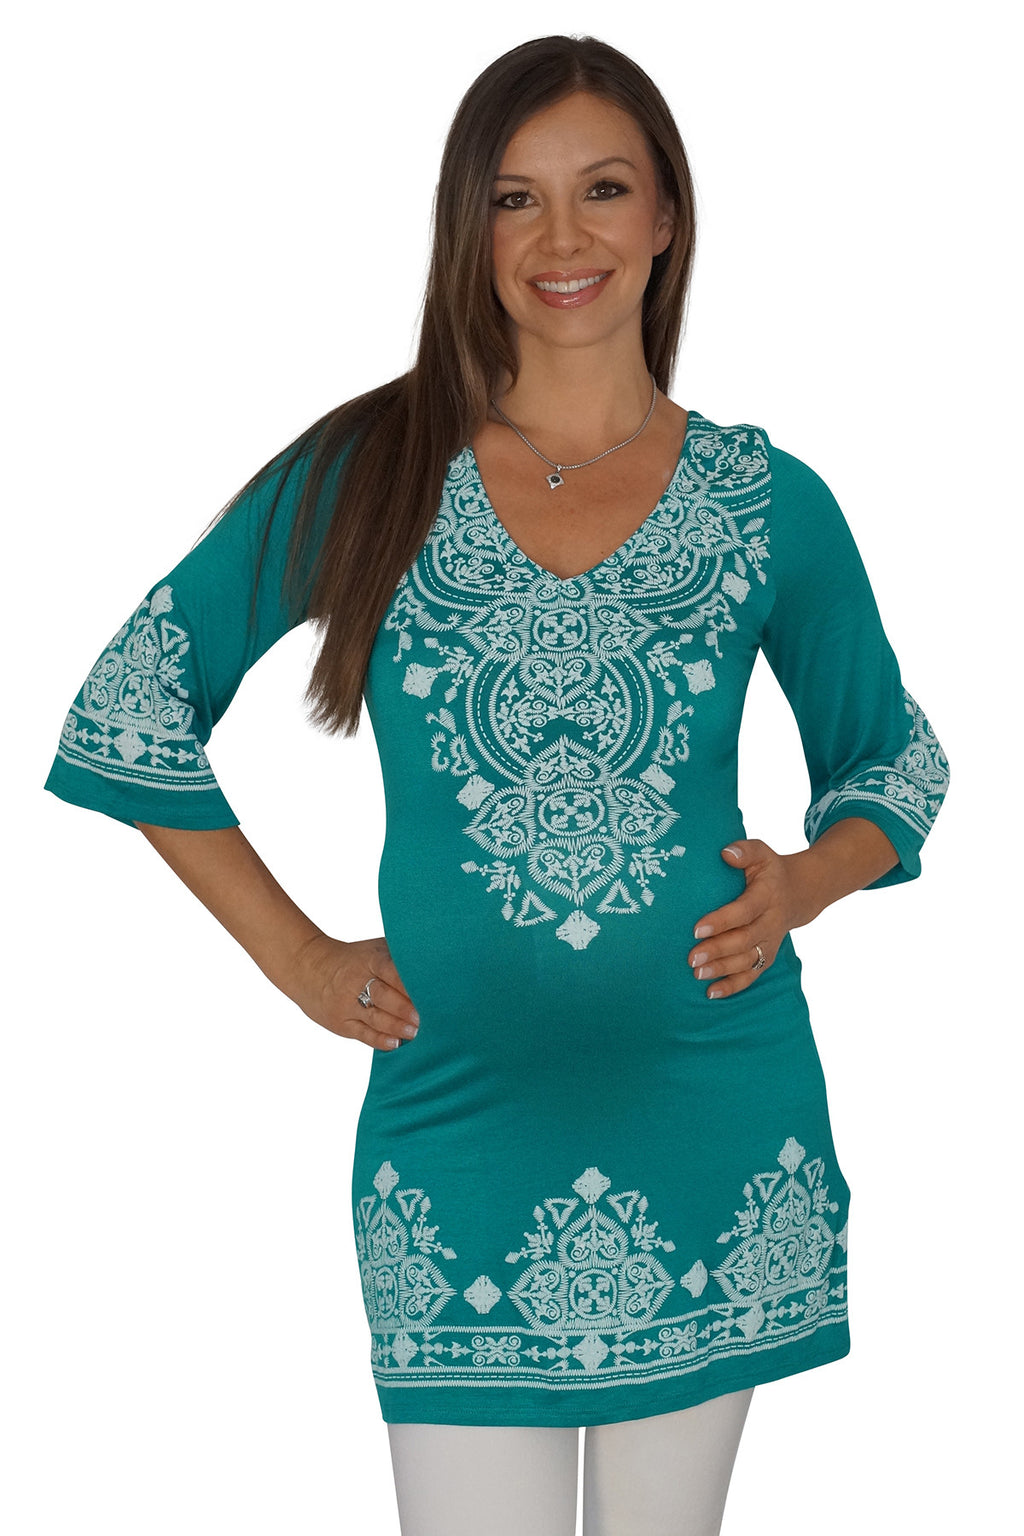 Patterned Maternity Tunic Top - Mommylicious